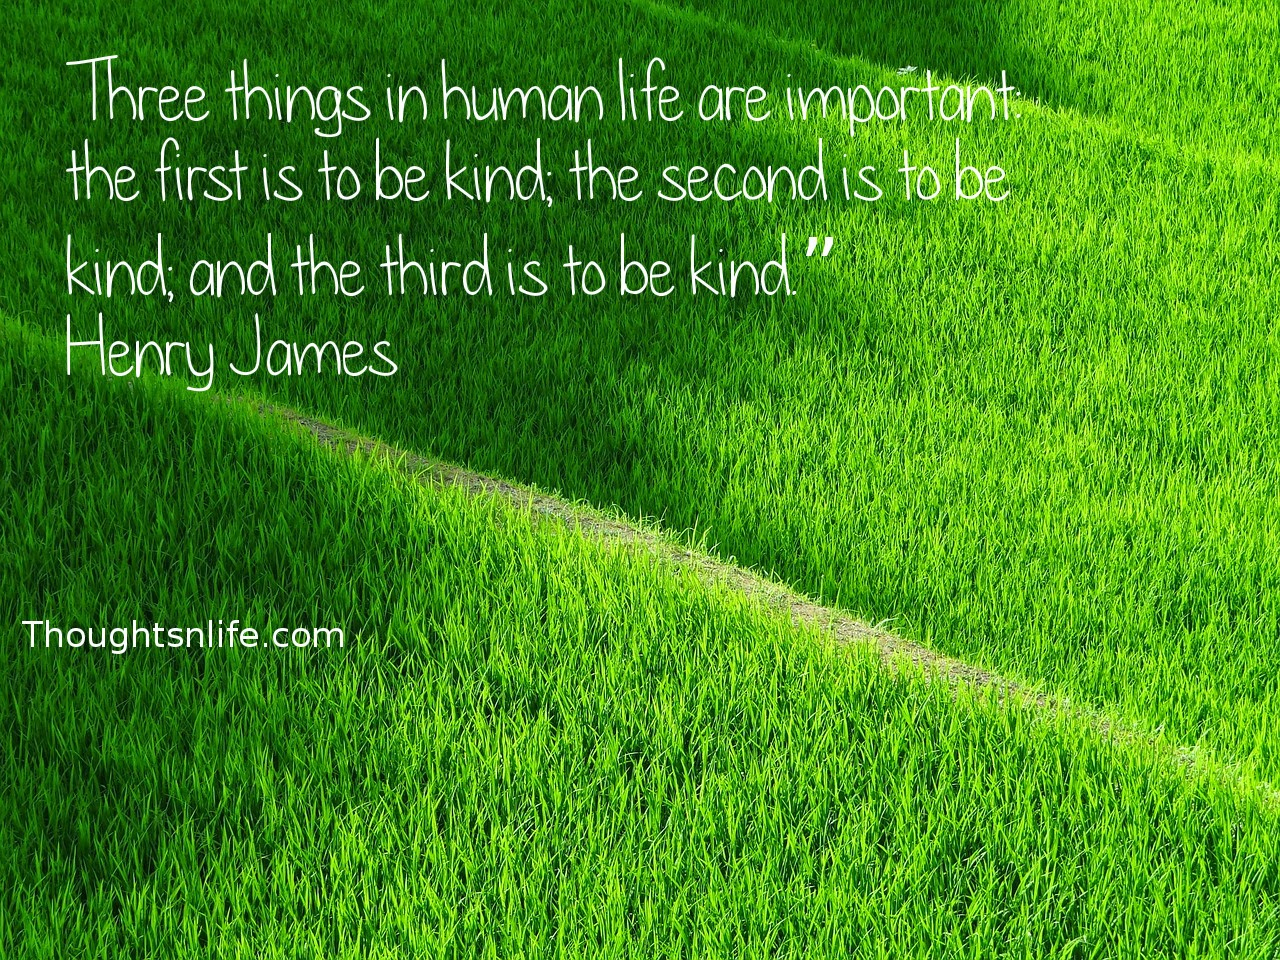 "Thoughtsnlife.com: Three things in human life are important: the first is to be kind; the second is to be kind; and the third is to be kind."" Henry James"